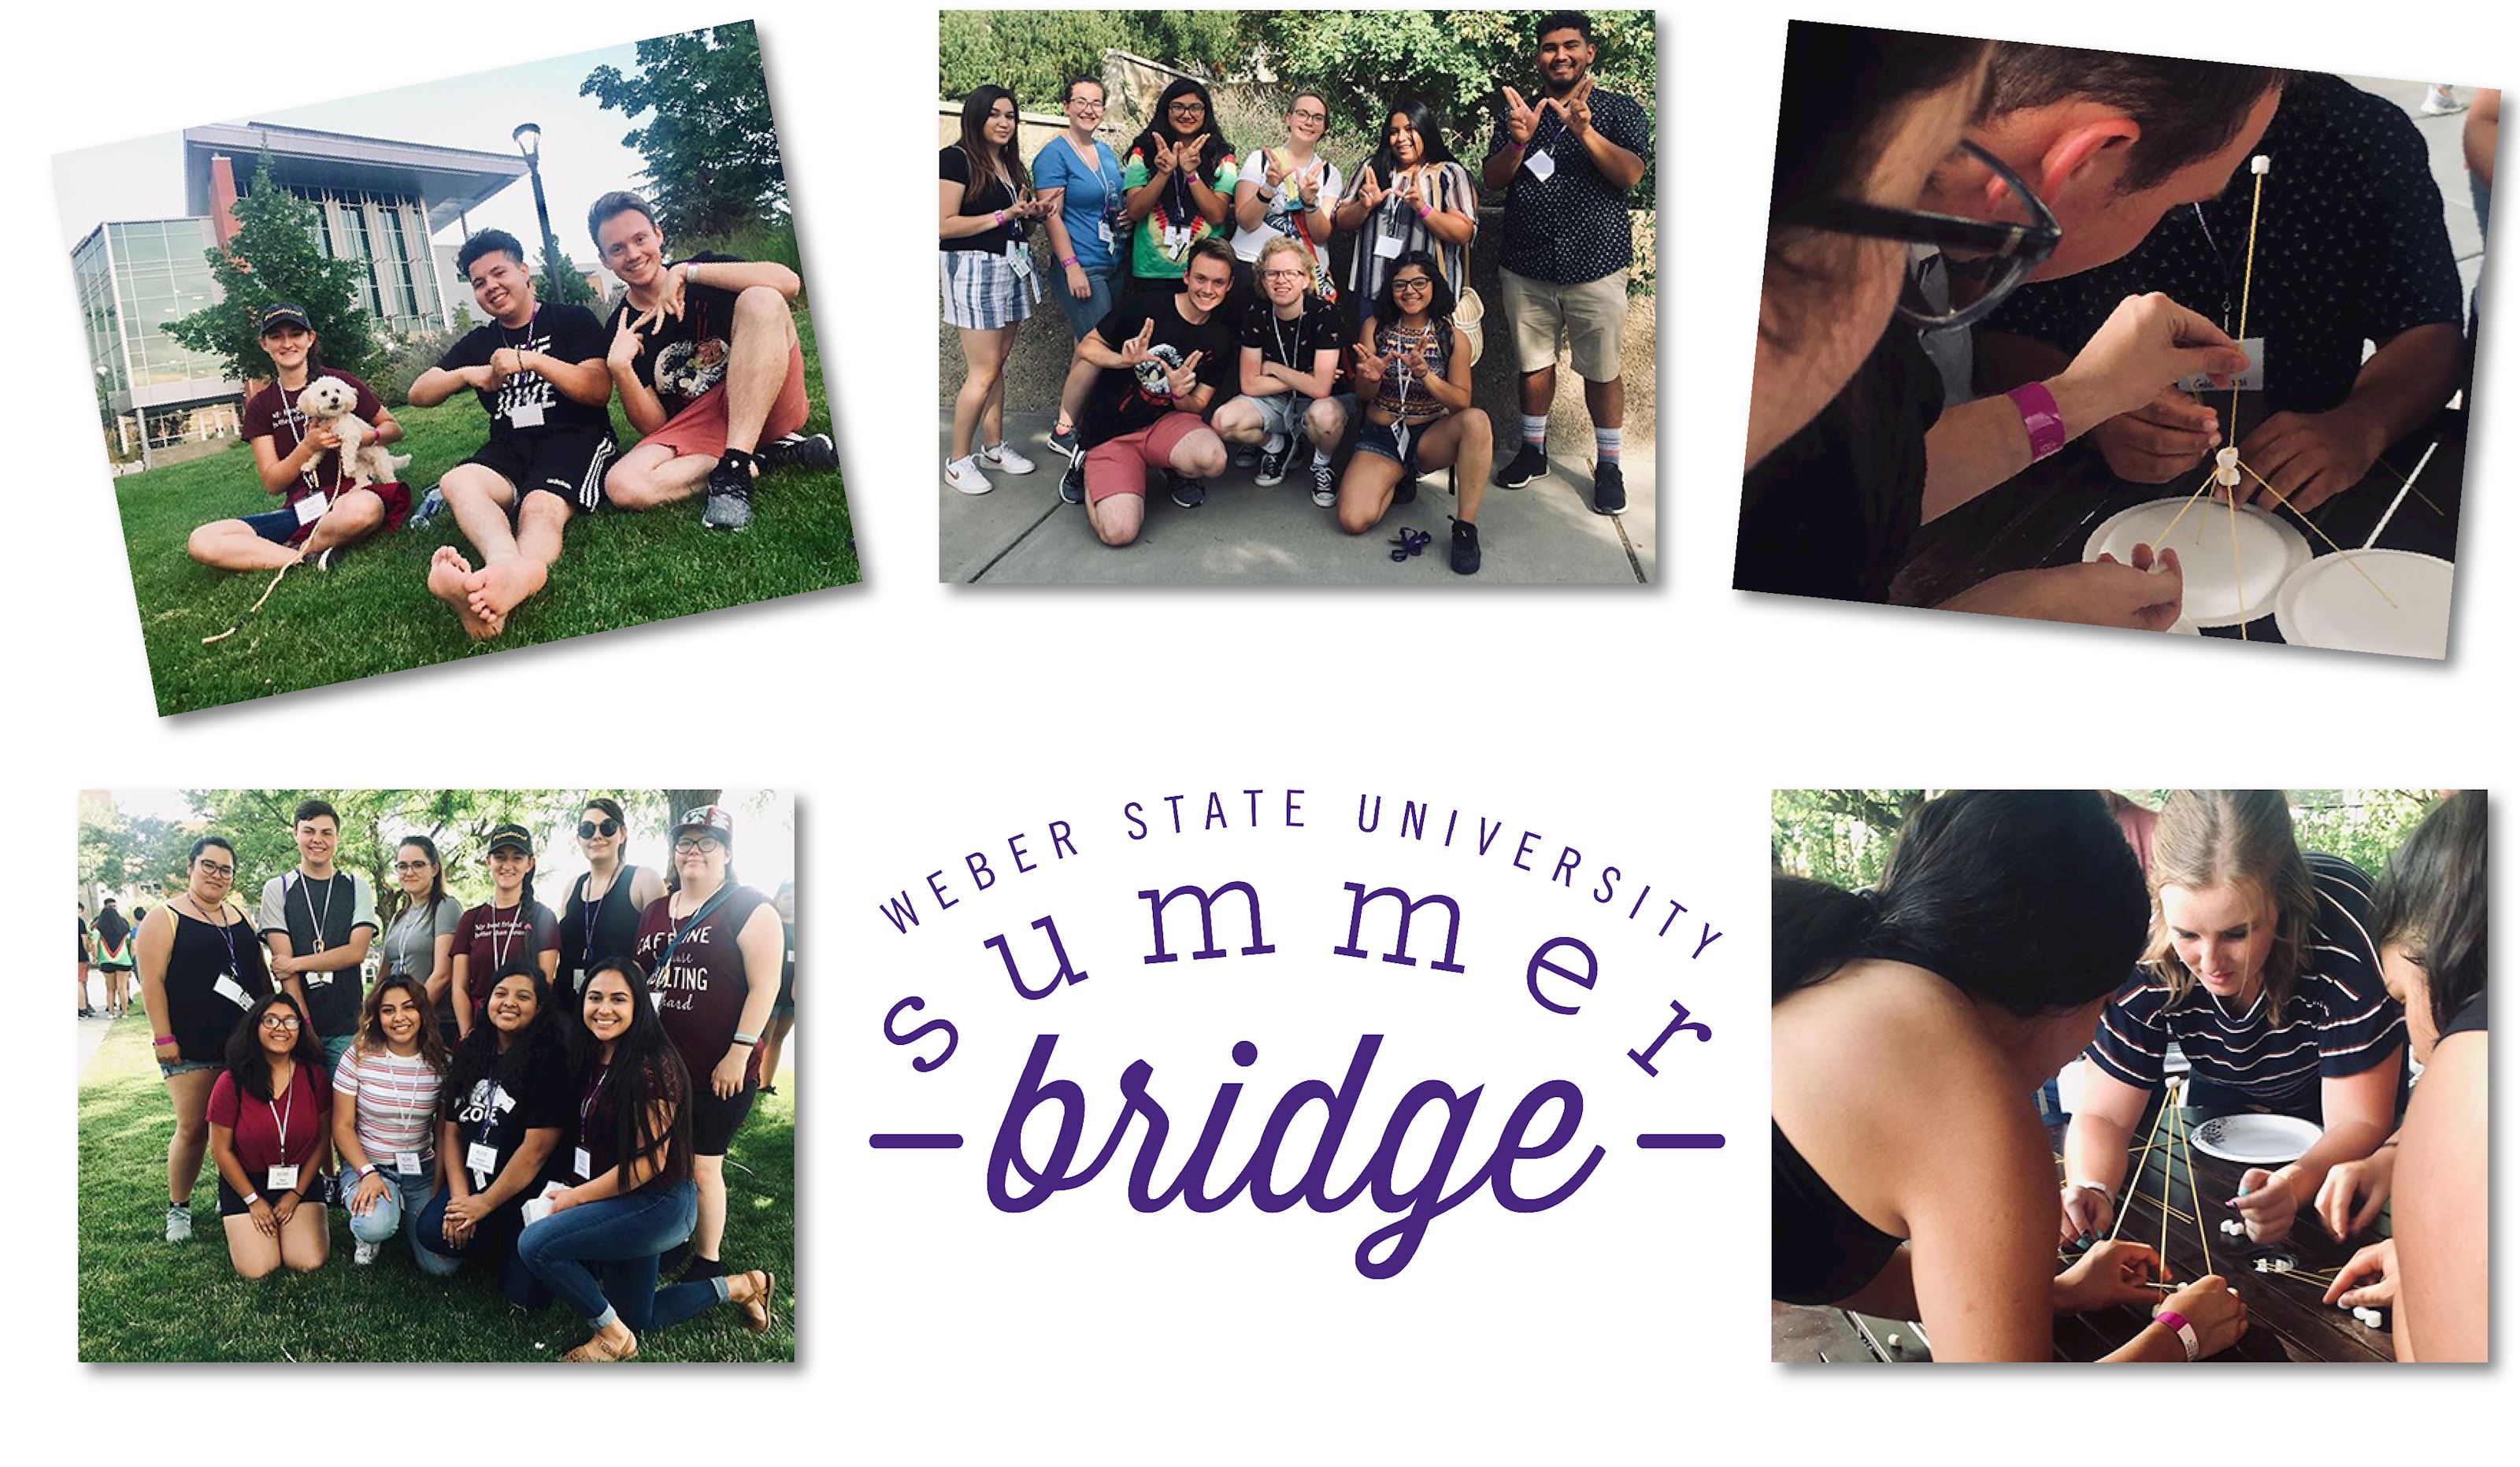 Images of those who attended the Summer Bridge program.